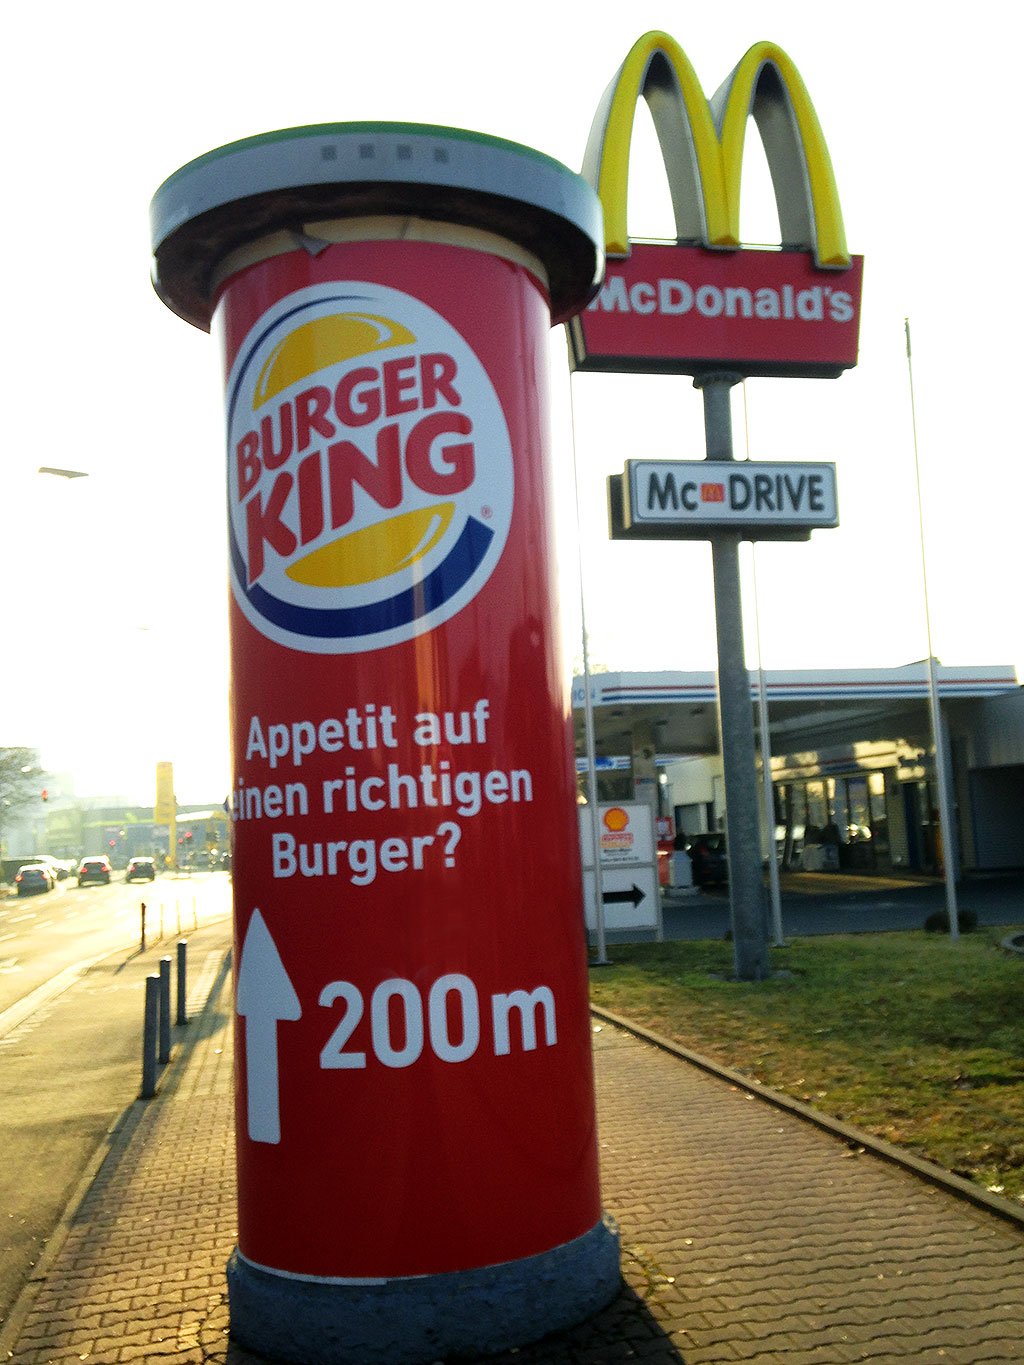 Burger King-Werbung bei Mc Donald's-Restaurant in Frankfurt